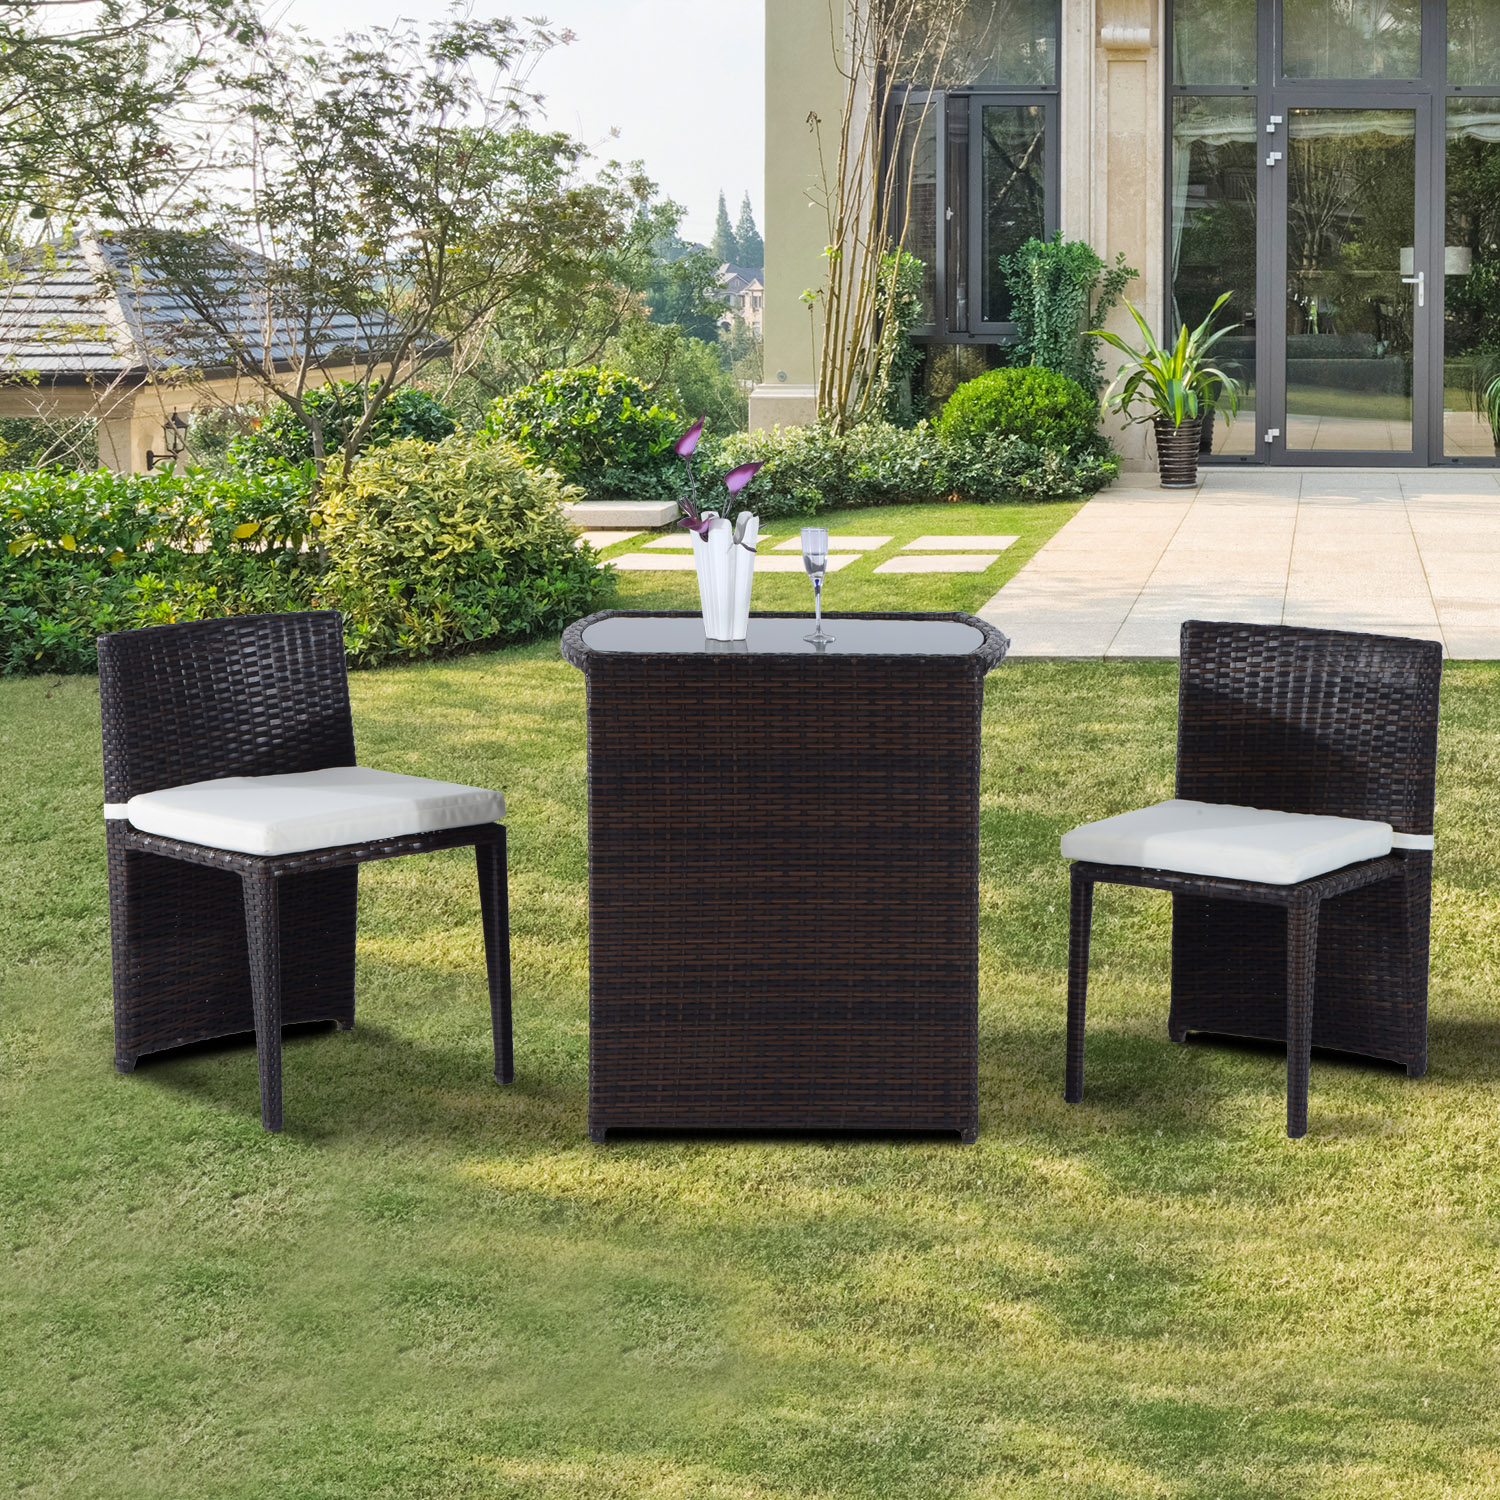 Image of CAD $189.99 Outsunny 3pcs Outdoor Wicker Rattan Bistro Set Patio Chair and Table Garden Lawn Coffee Sofa Furniture with Cushion / w/ Canada 46655326829